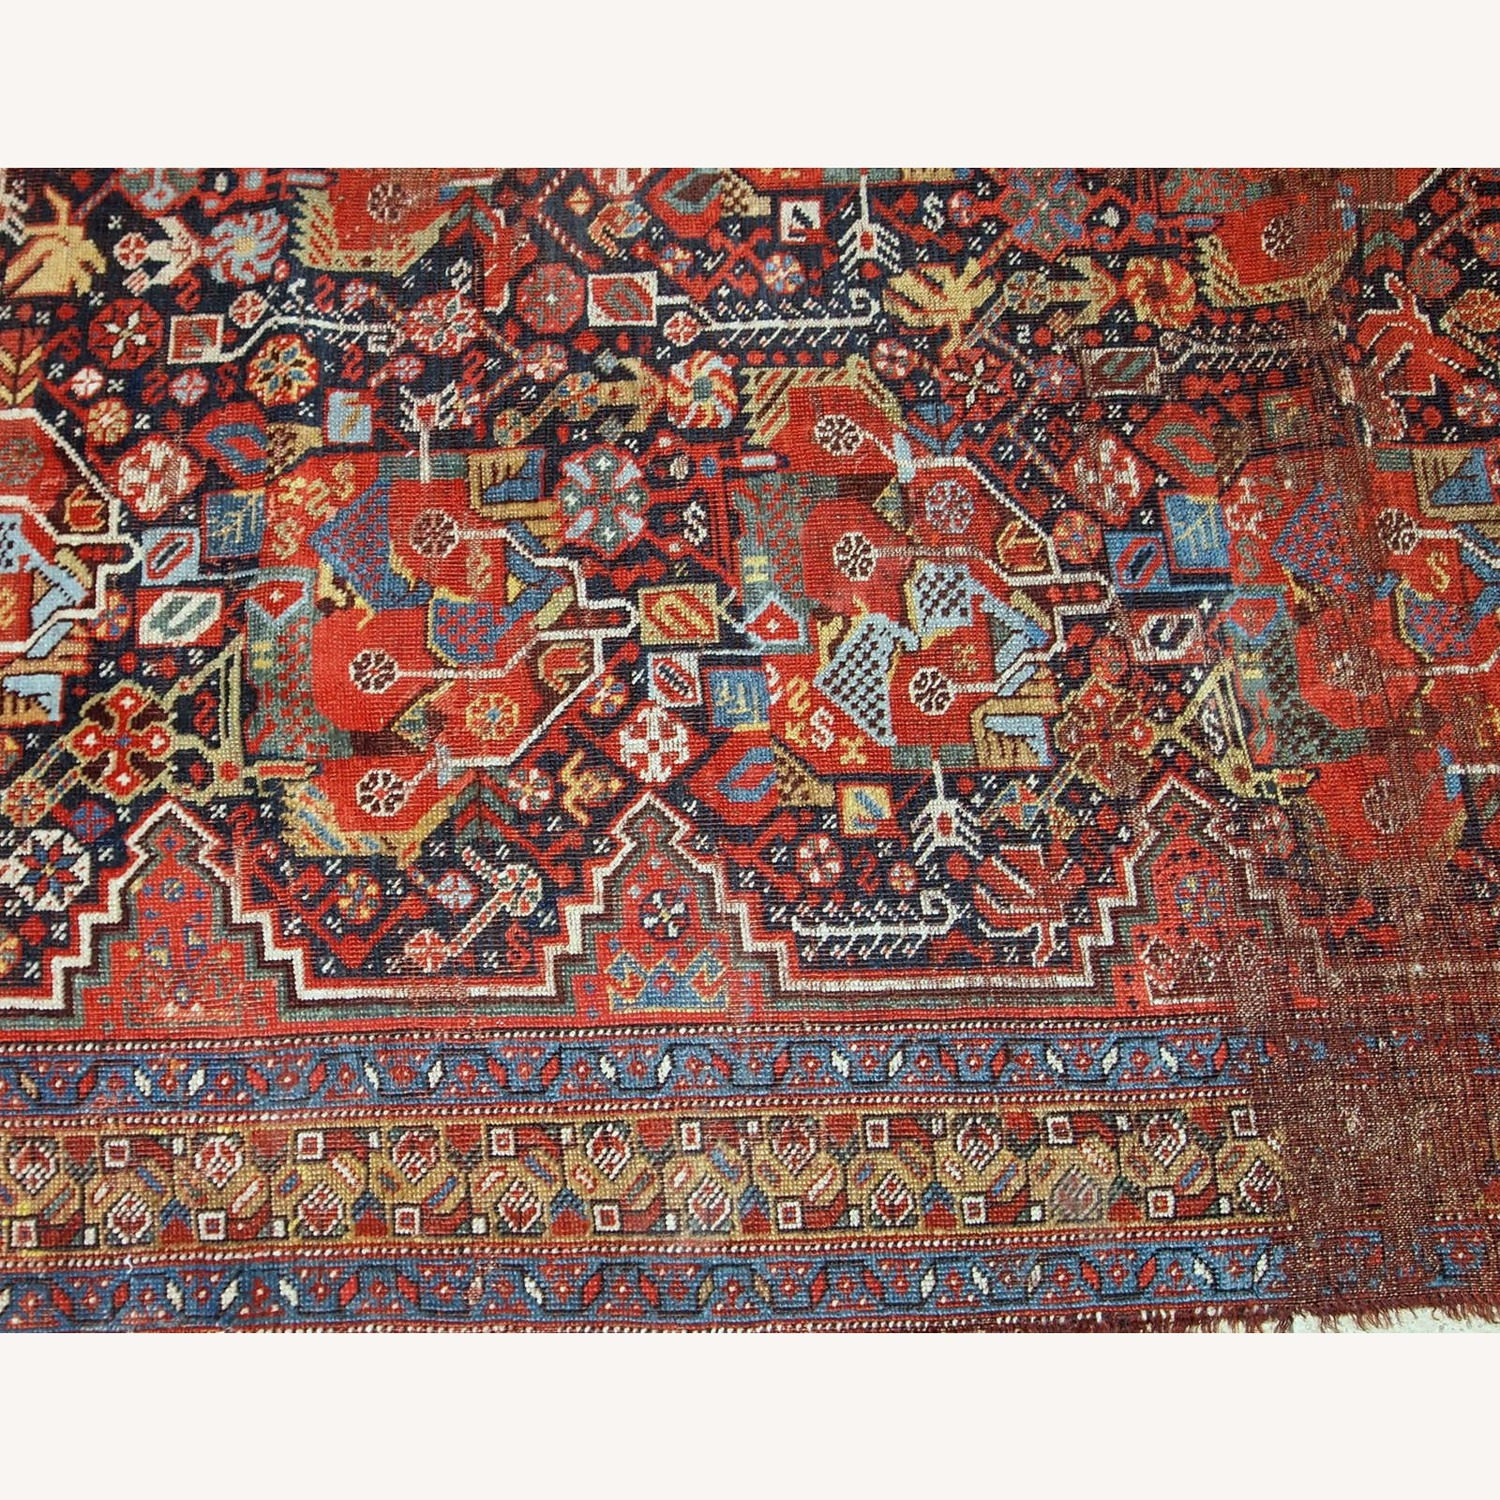 Handmade Antique Collectible Persian Khamseh Rug - image-8